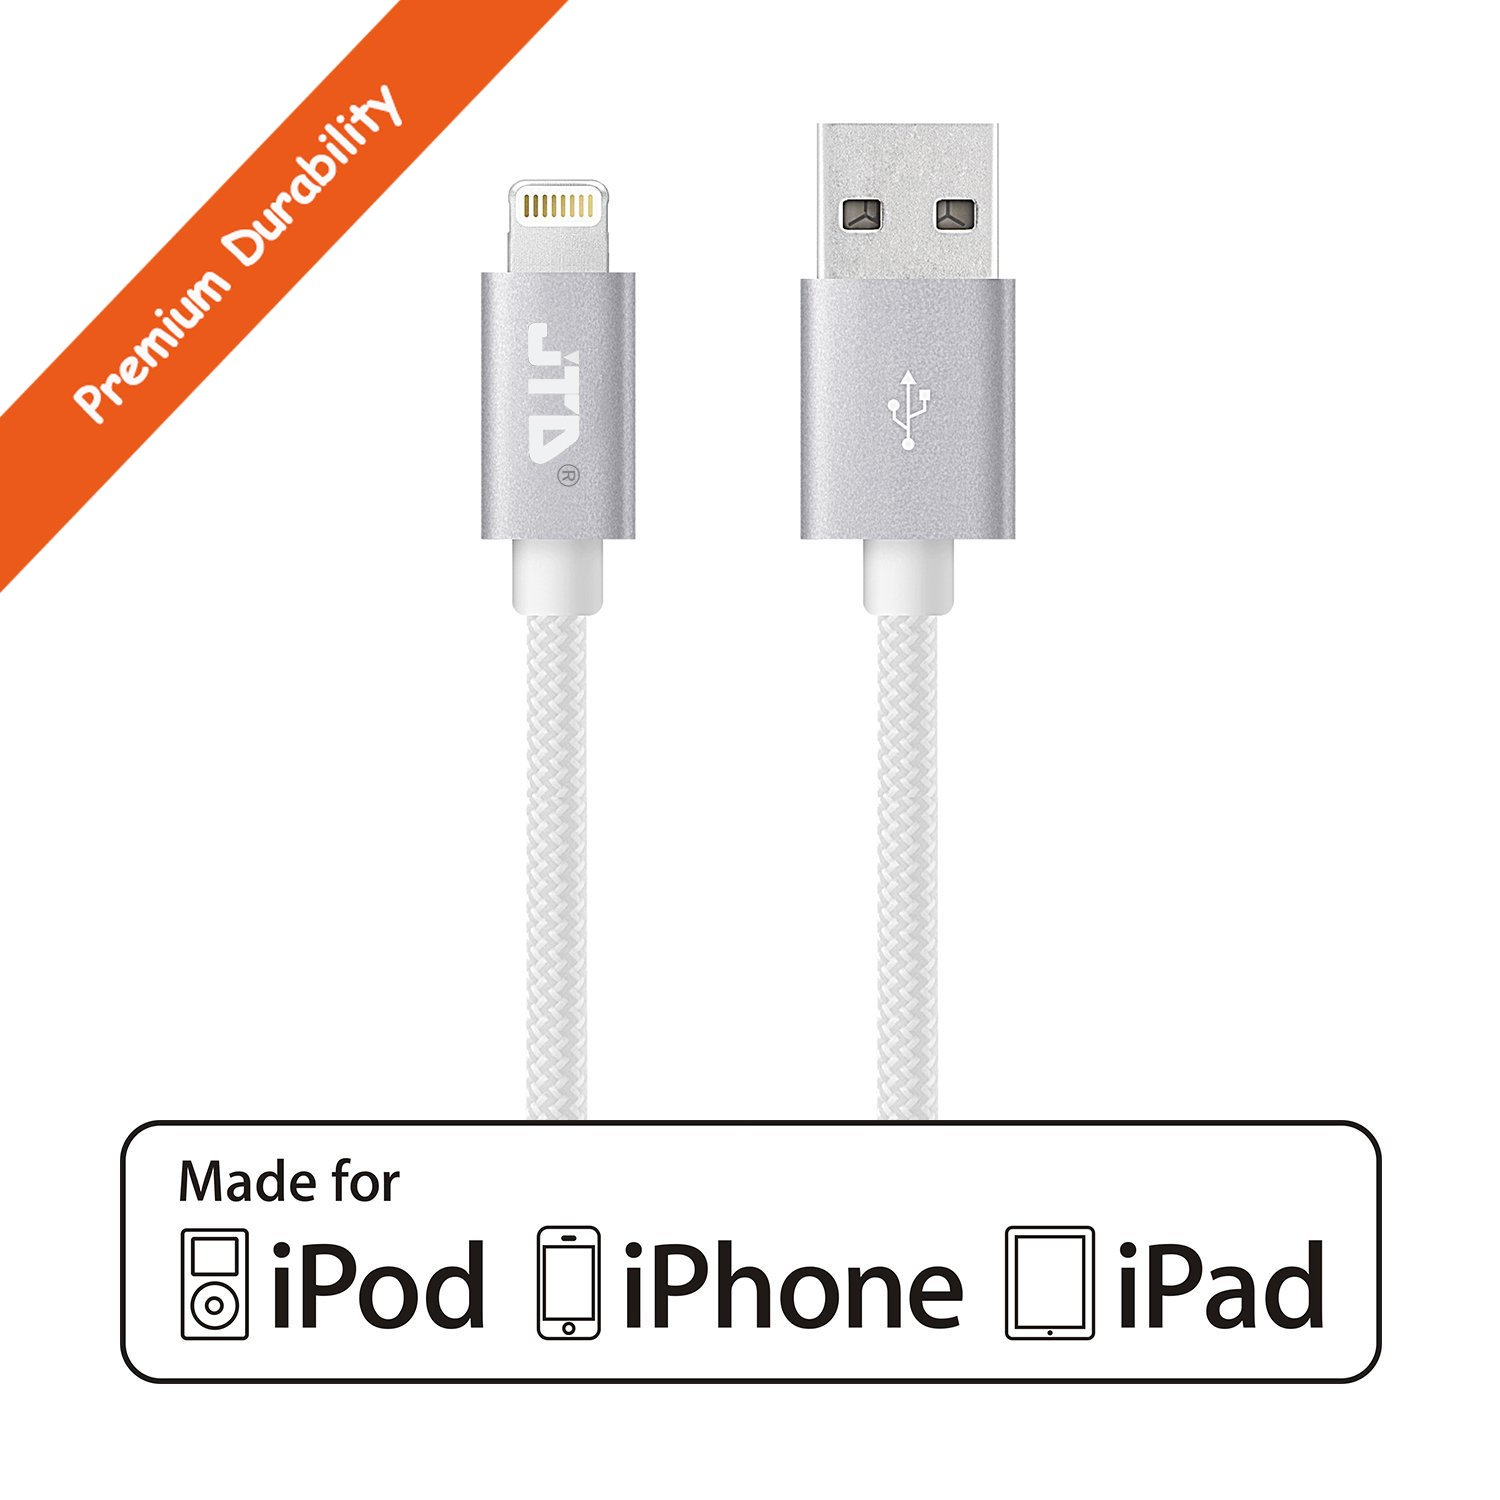 Jtd 3 Ft Nylon Braided Lightning To Usb Cable With Ultra Compact Ipod Iphone Charger Wiring Diagram Main Main2 Main3 Main4